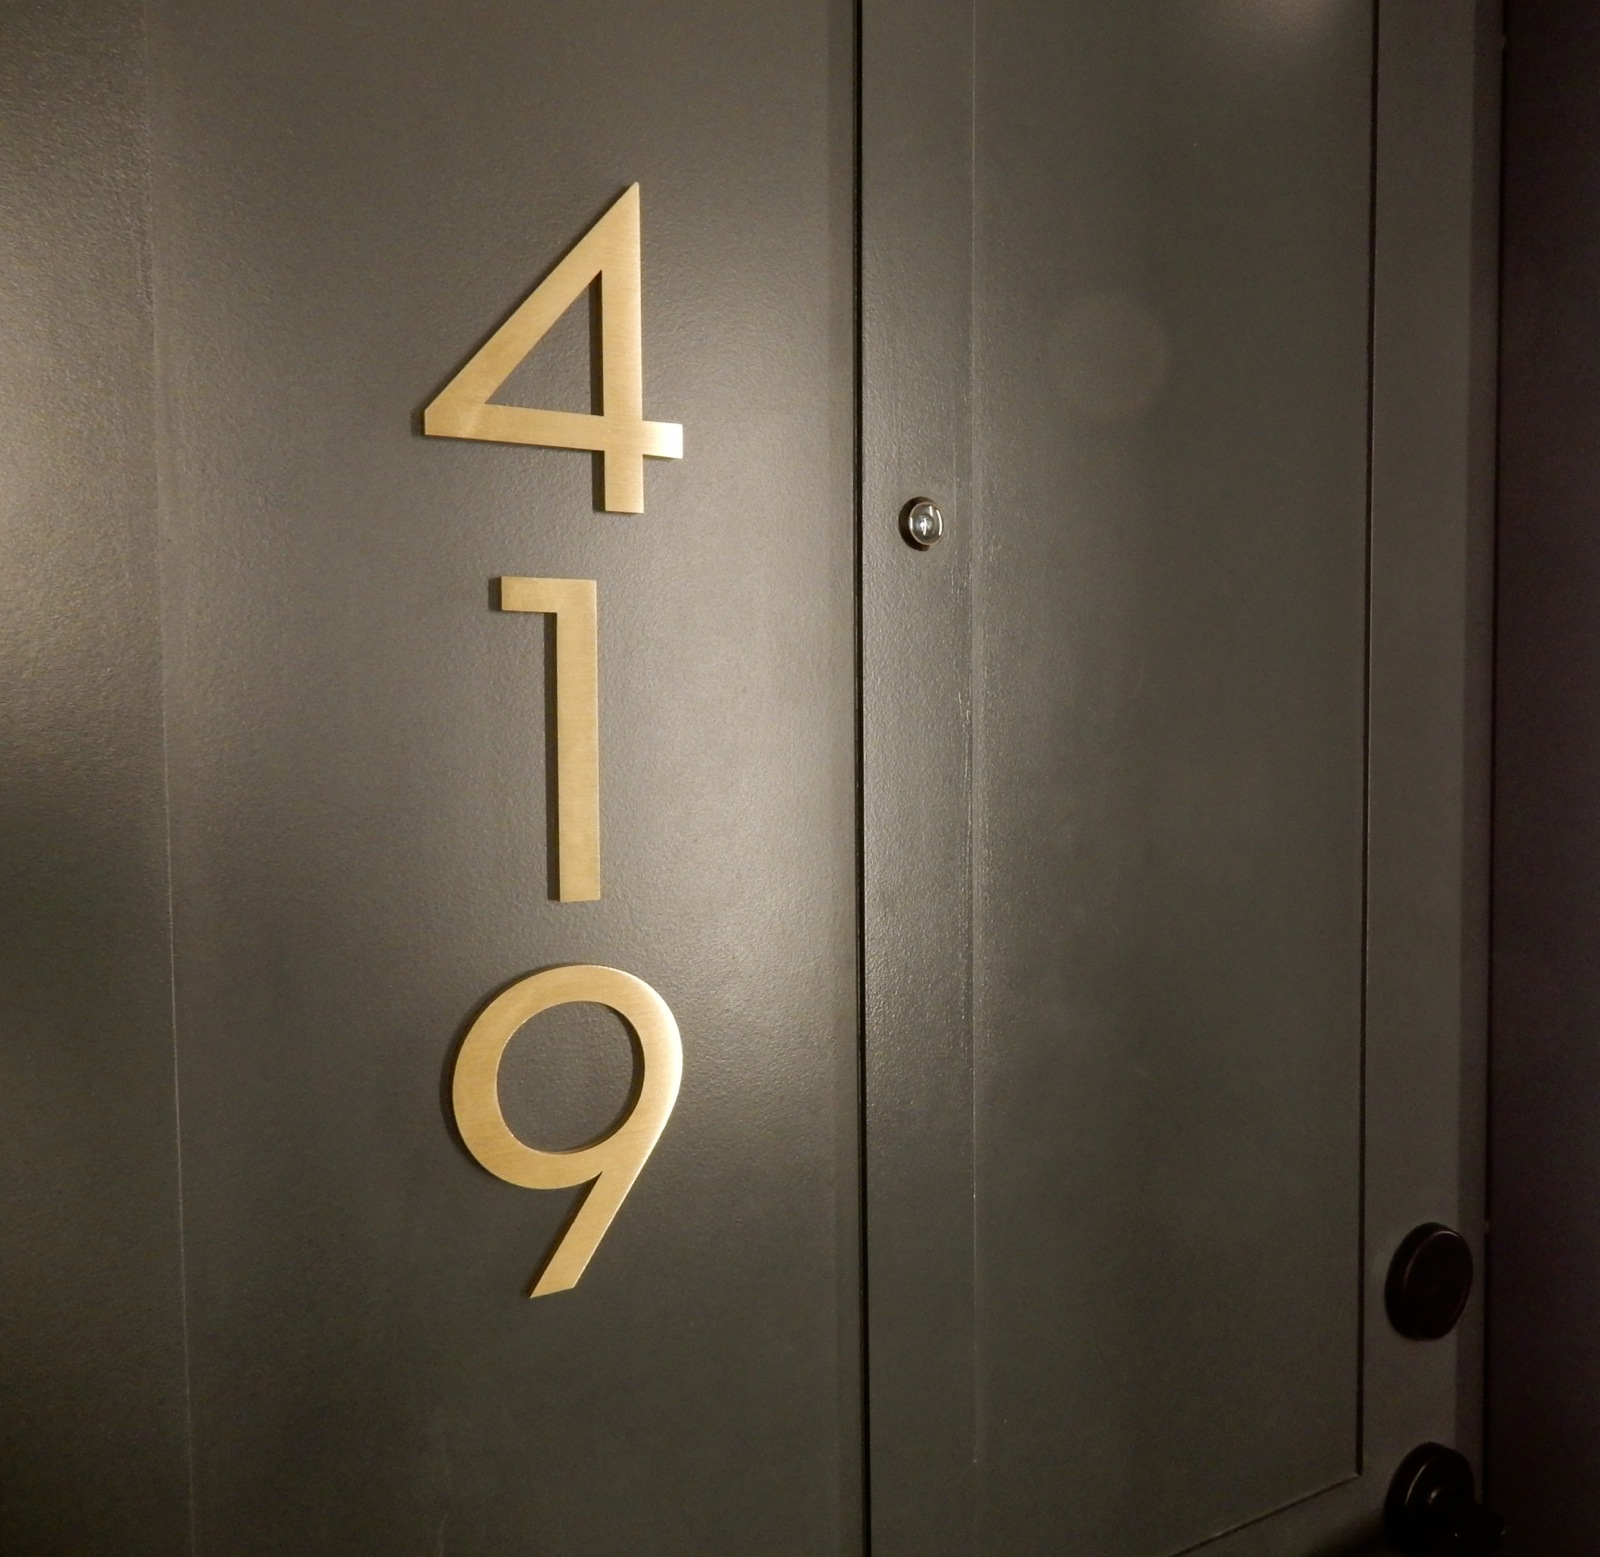 Metal Stainless Steel Apartment Hotel Door Room House Numbers Sign Plate -  Buy Metal Sign,House Number,Room Number Product on Alibaba.com